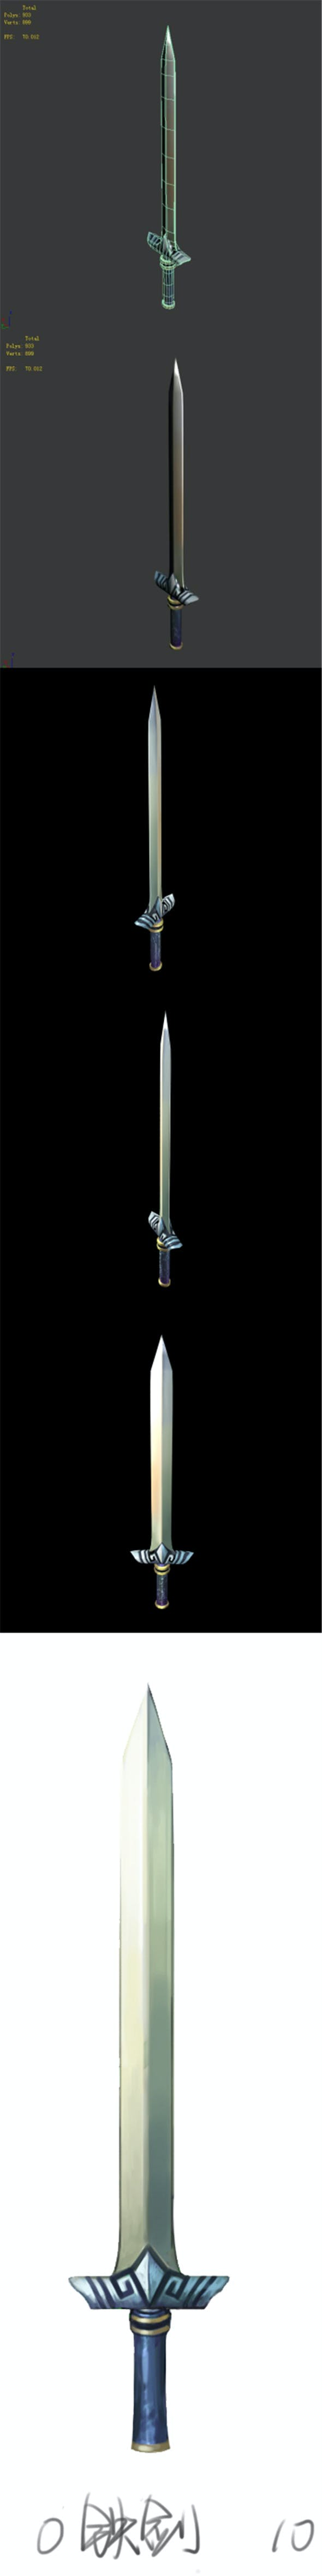 Game character weapons - iron sword - 3DOcean Item for Sale